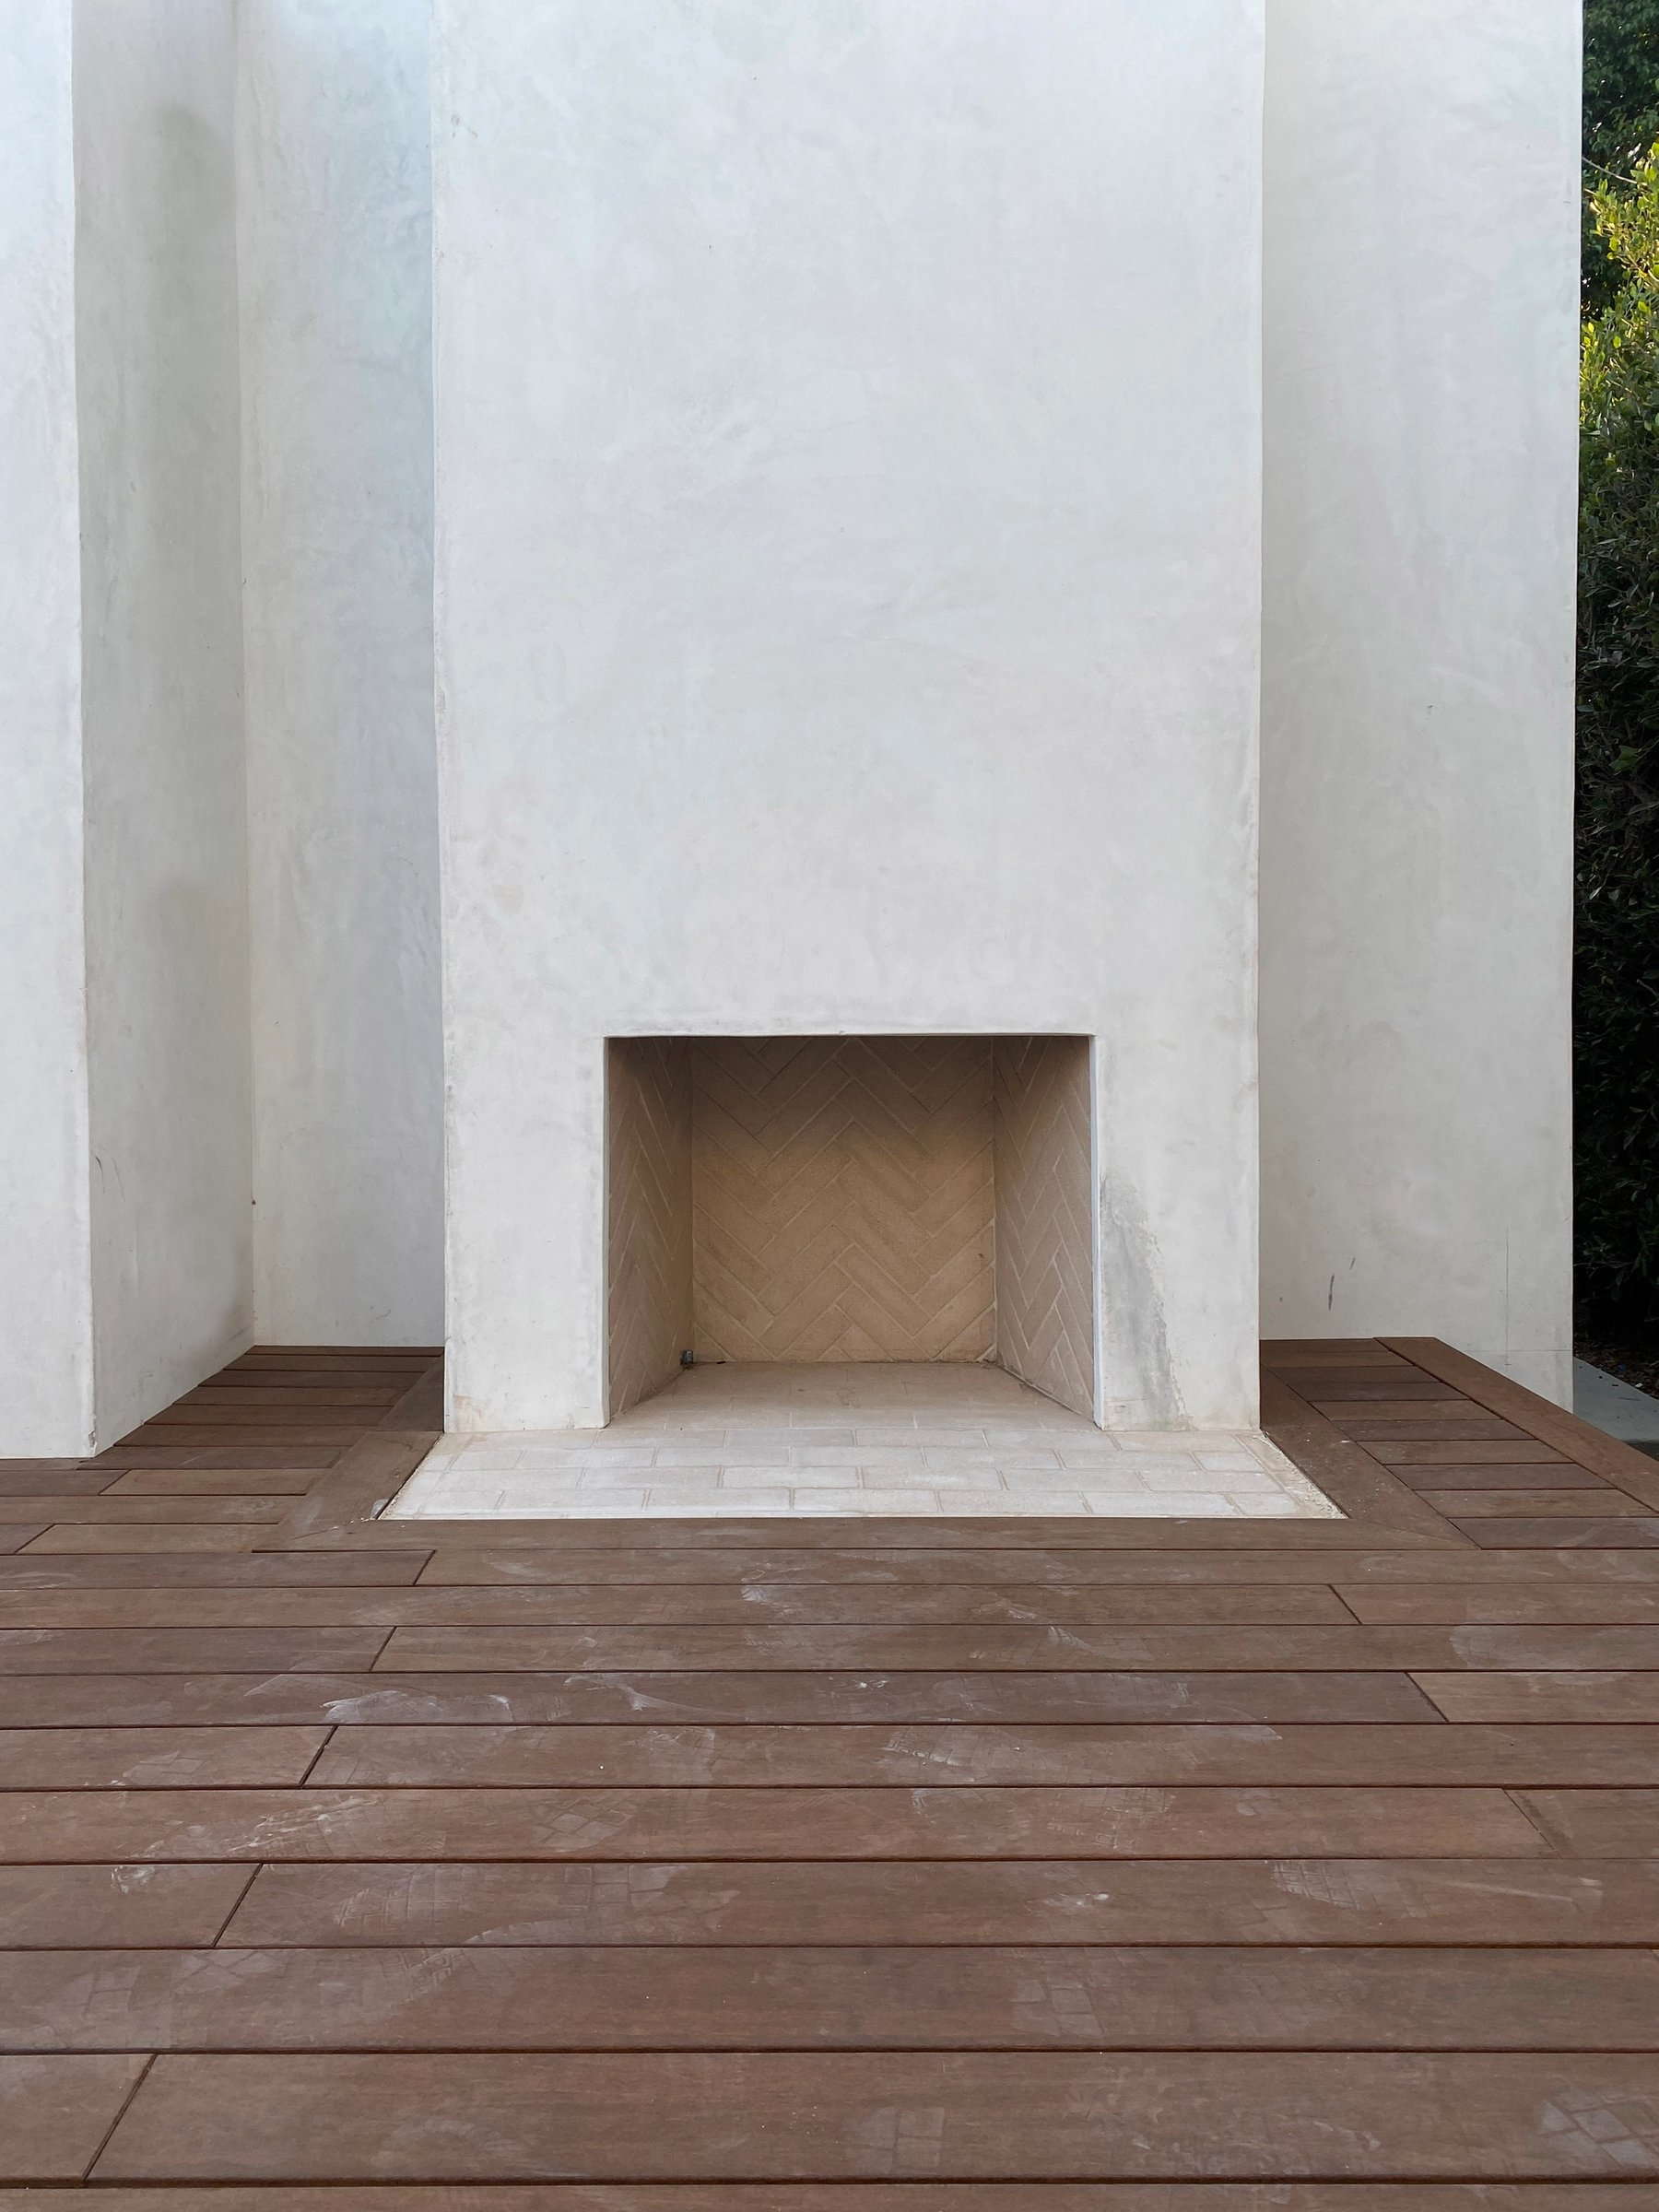 An outdoor fireplace clad in smooth stucco with a sustainable bamboo deck